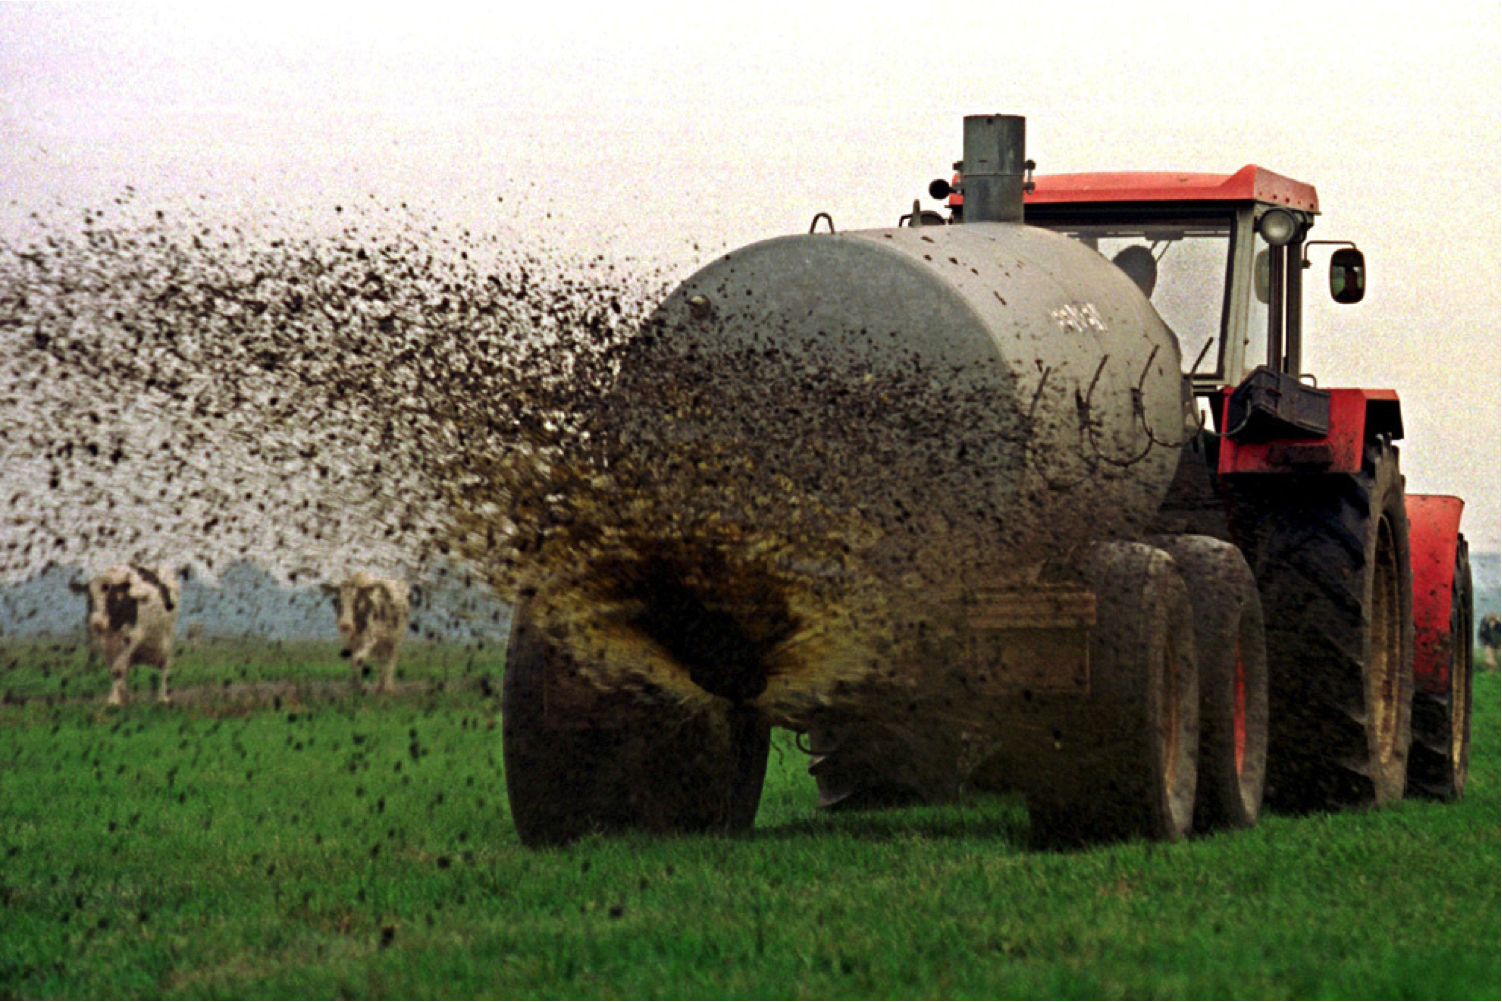 Manure is being brought out using a traditional deflector plate